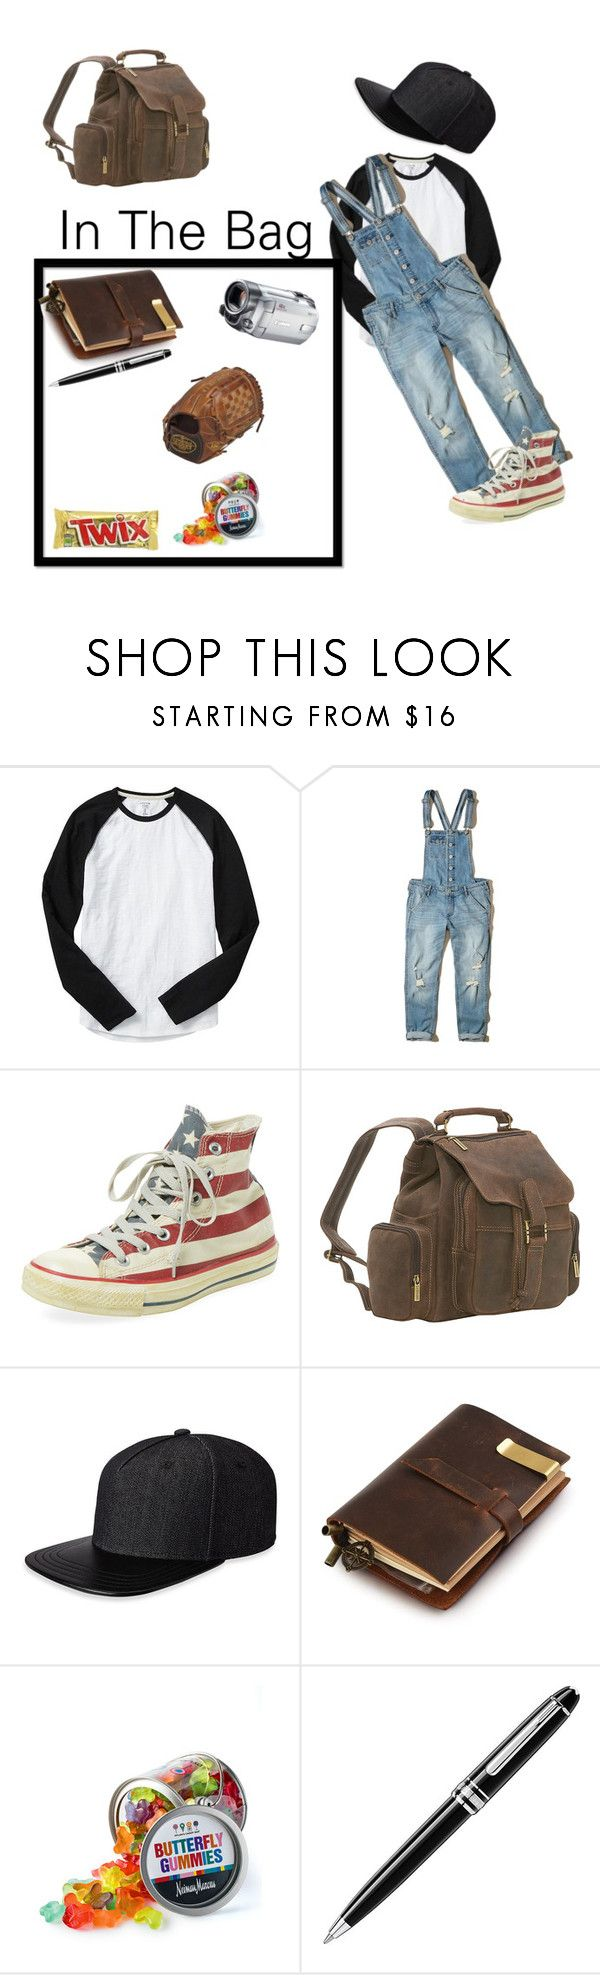 """Daughter Of Castiel (12)"" by georgiaearnest ❤ liked on Polyvore featuring Gap, Hollister Co., Converse, Le Donne, Gents, Fountain, Dylan's Candy Bar, Montblanc and Louisville Slugger"